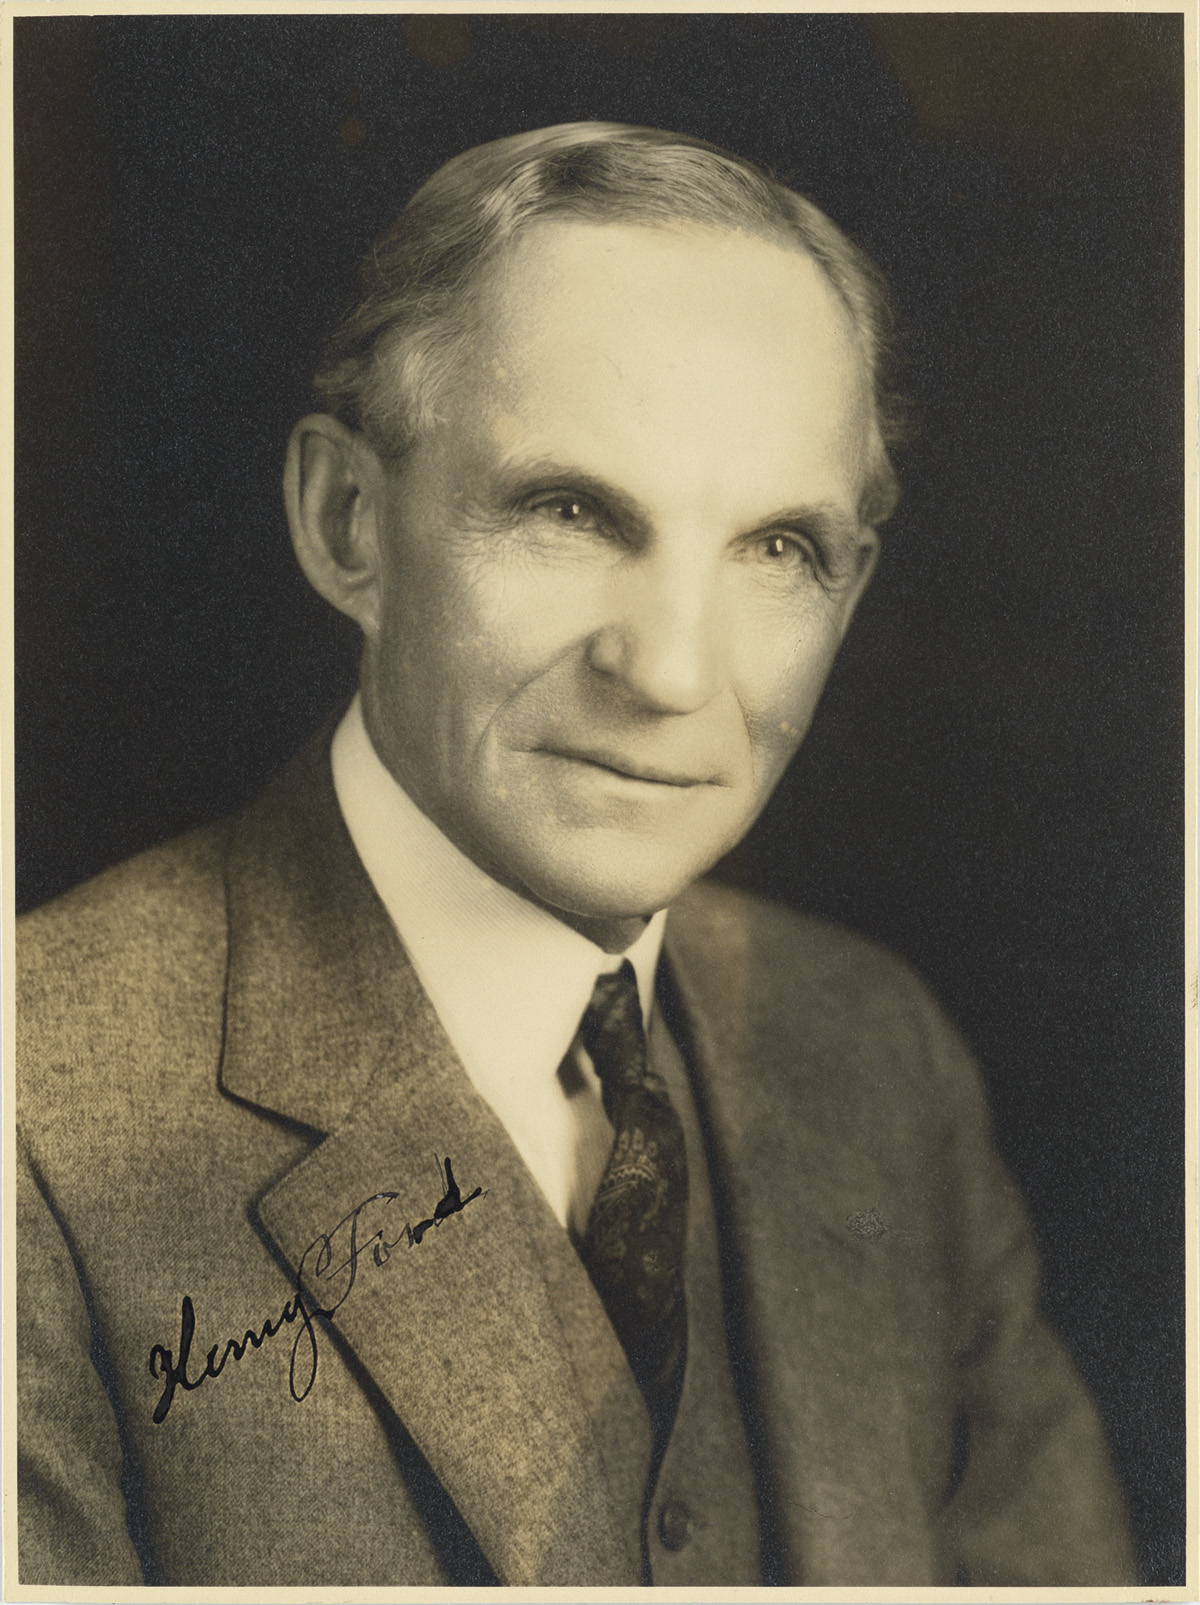 (BUSINESS)-FORD-HENRY-Photograph-Signed-bust-portrait-showin